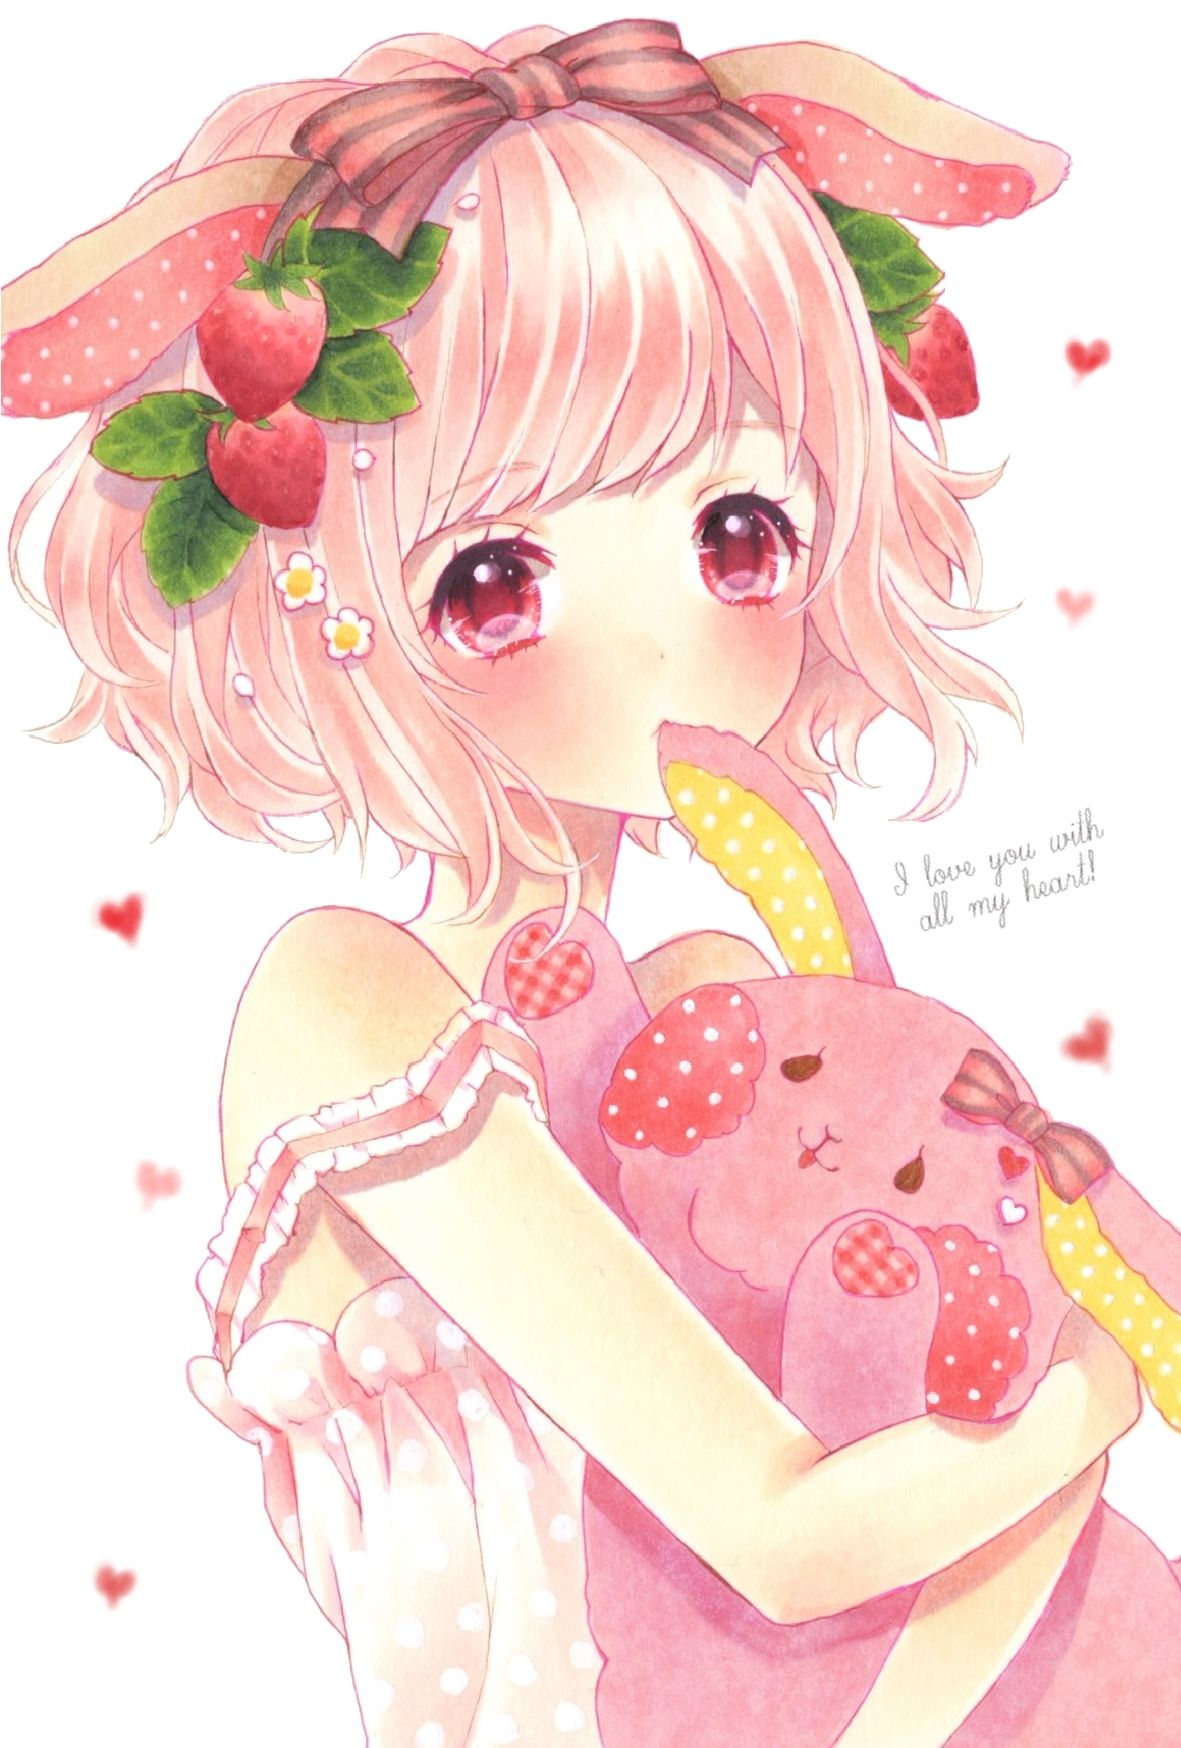 This is kiana, the is 8 years old she like strawberry's